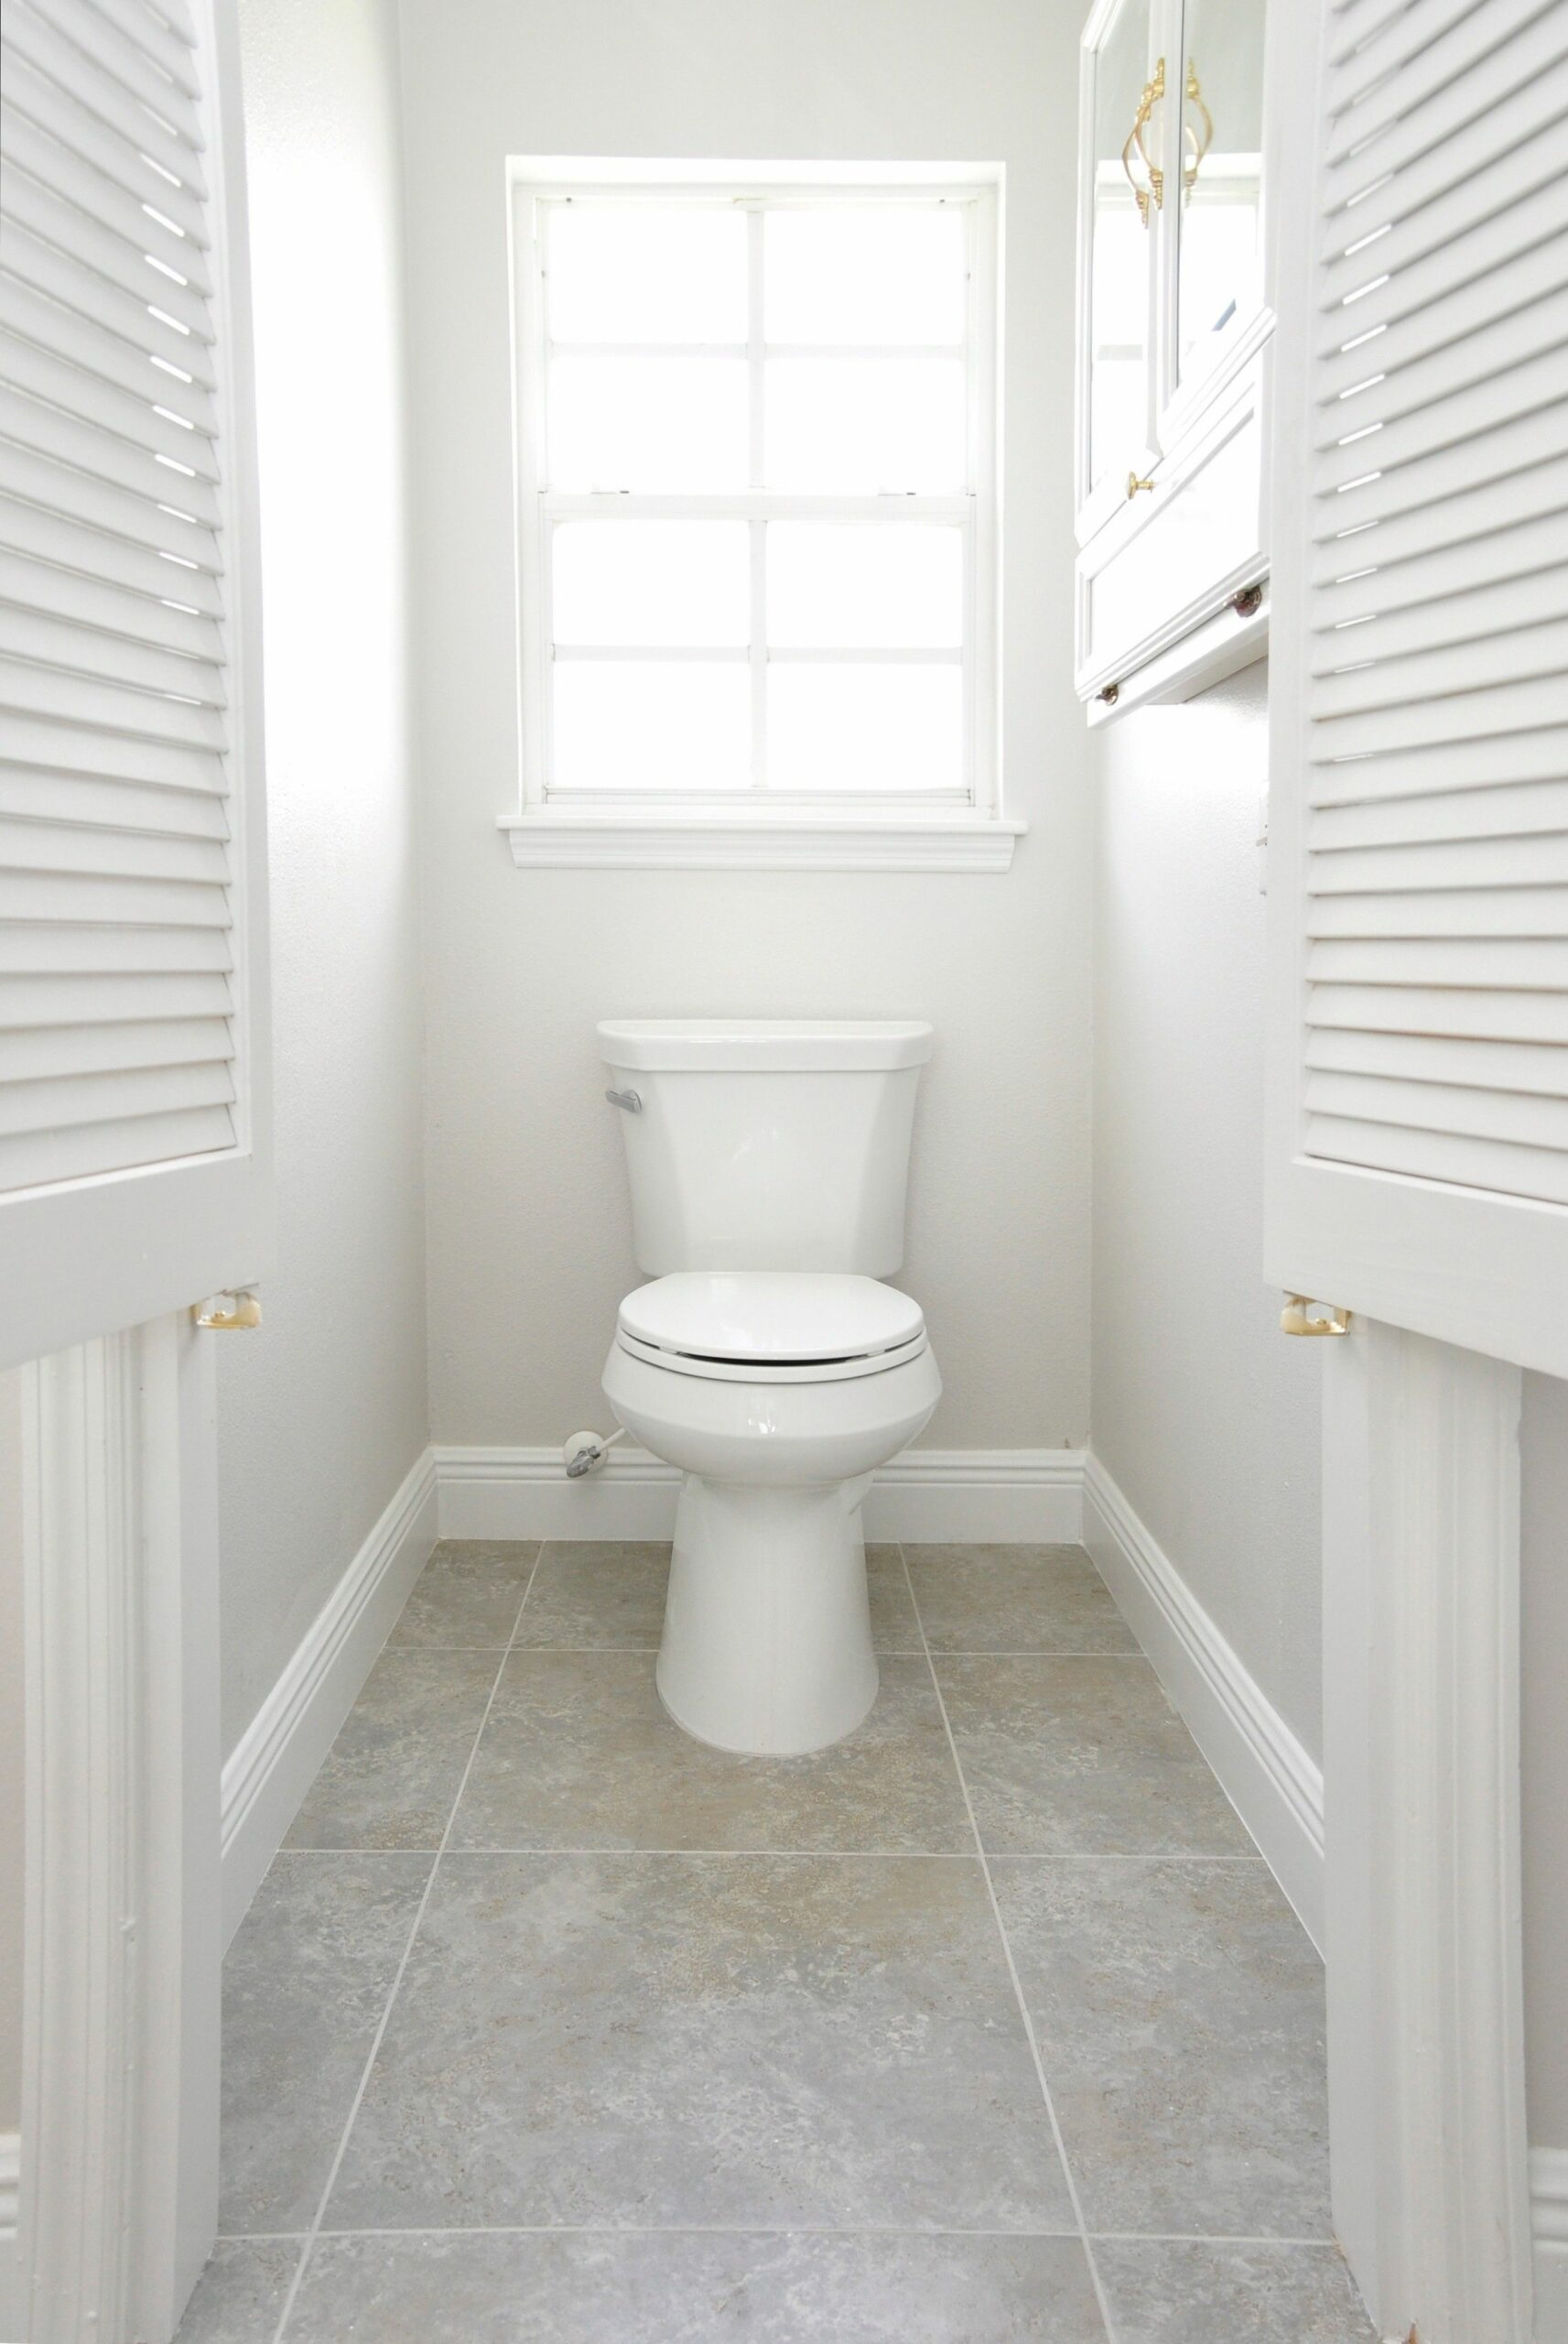 white neutral toilet bathroom with window, medicine cabinet, and ..